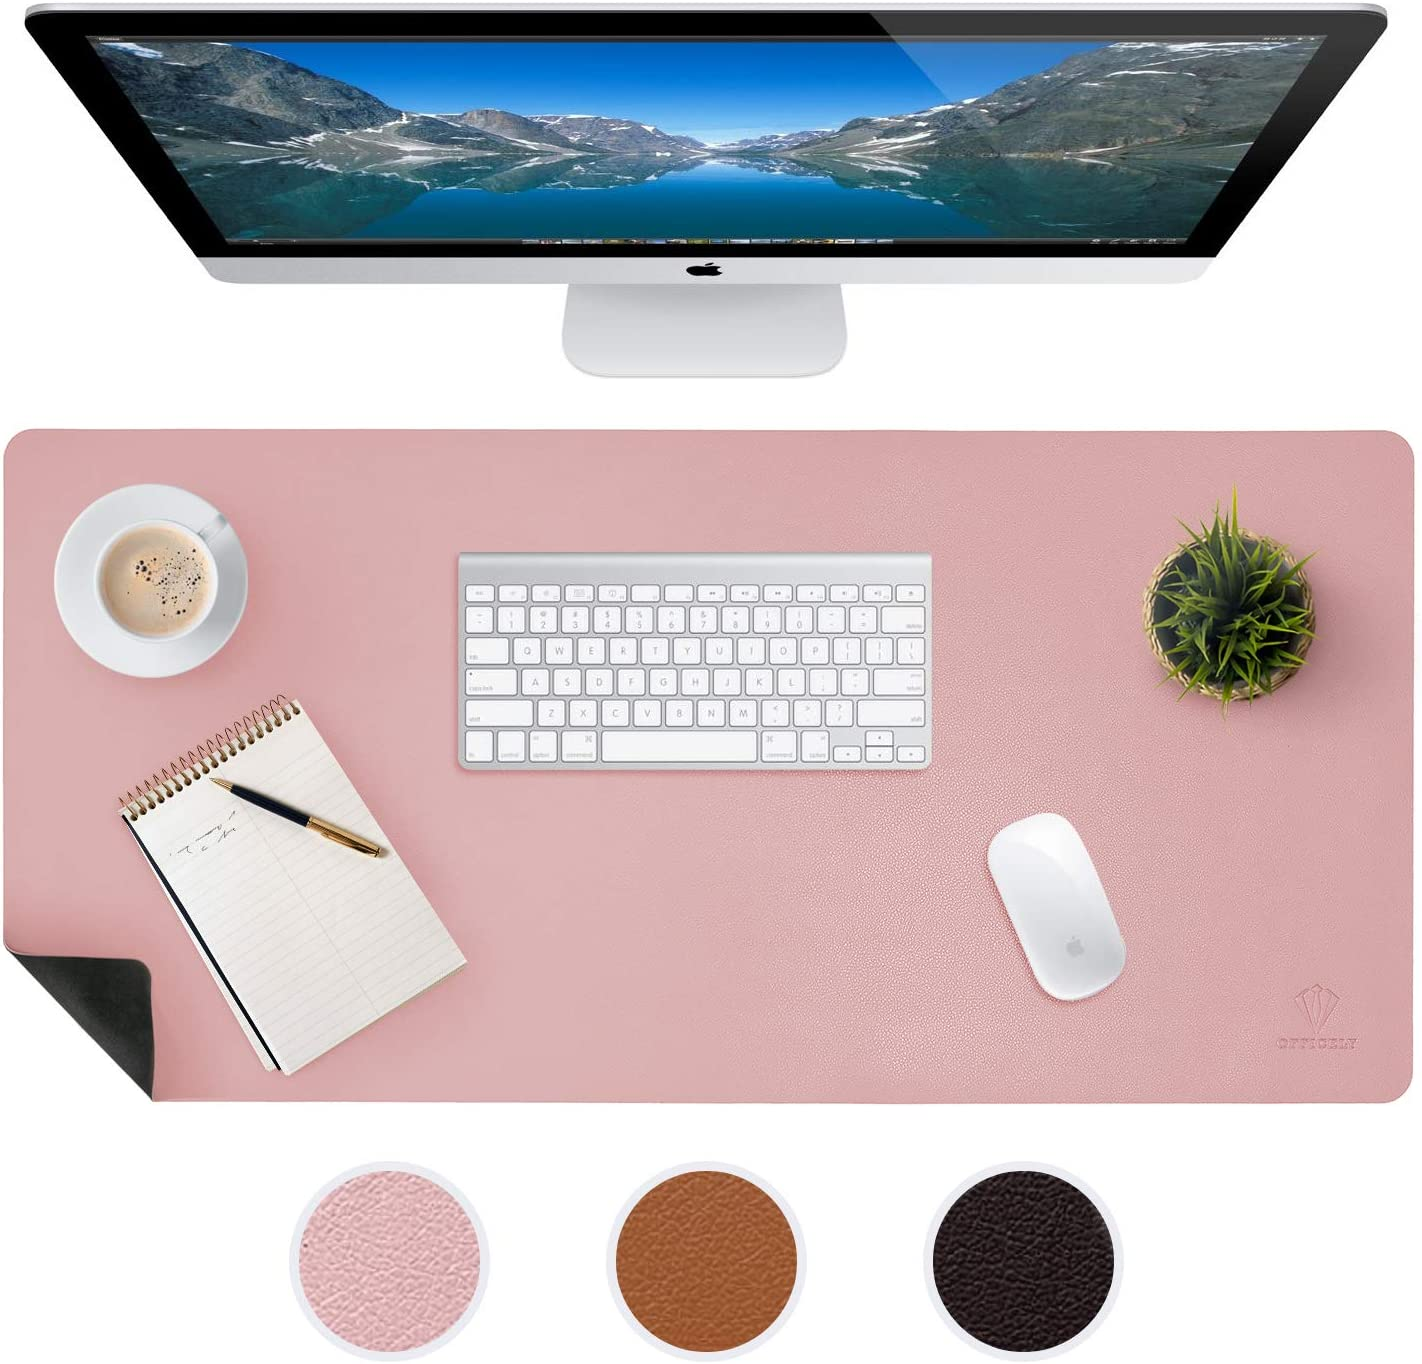 Large Leather Desk Mats for Keyboard and Mouse Pad, Anti-Skid Backing with Heat Resistant and Waterproof Surface, Responsive Desktop for Gaming, Writing, or Home Office Work (Pink, 24X48)